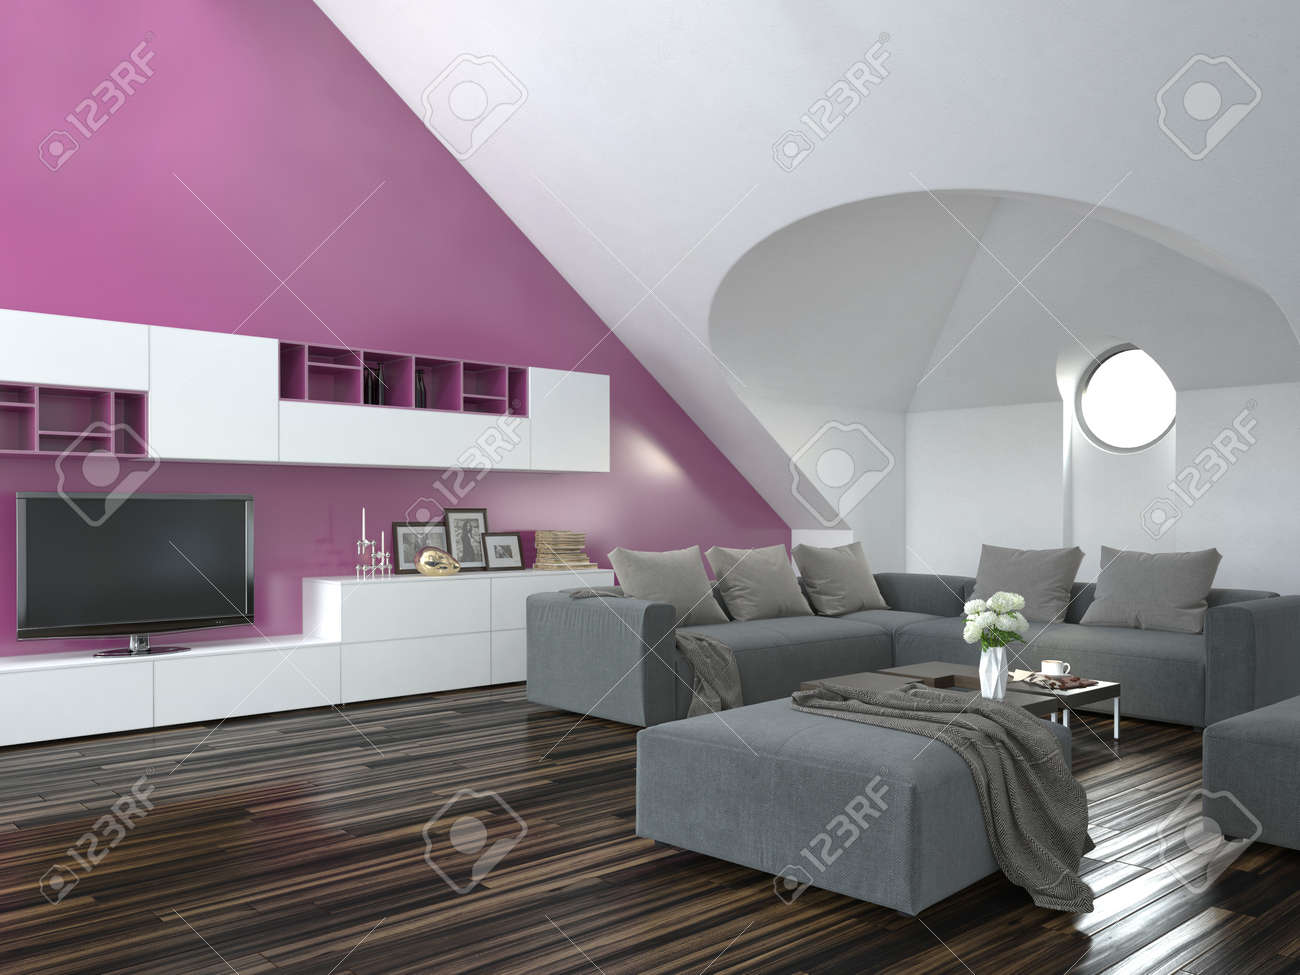 Modern Loft Living Room Interior With A Sloping Ceiling And Purple Accent  Wall With A Grey